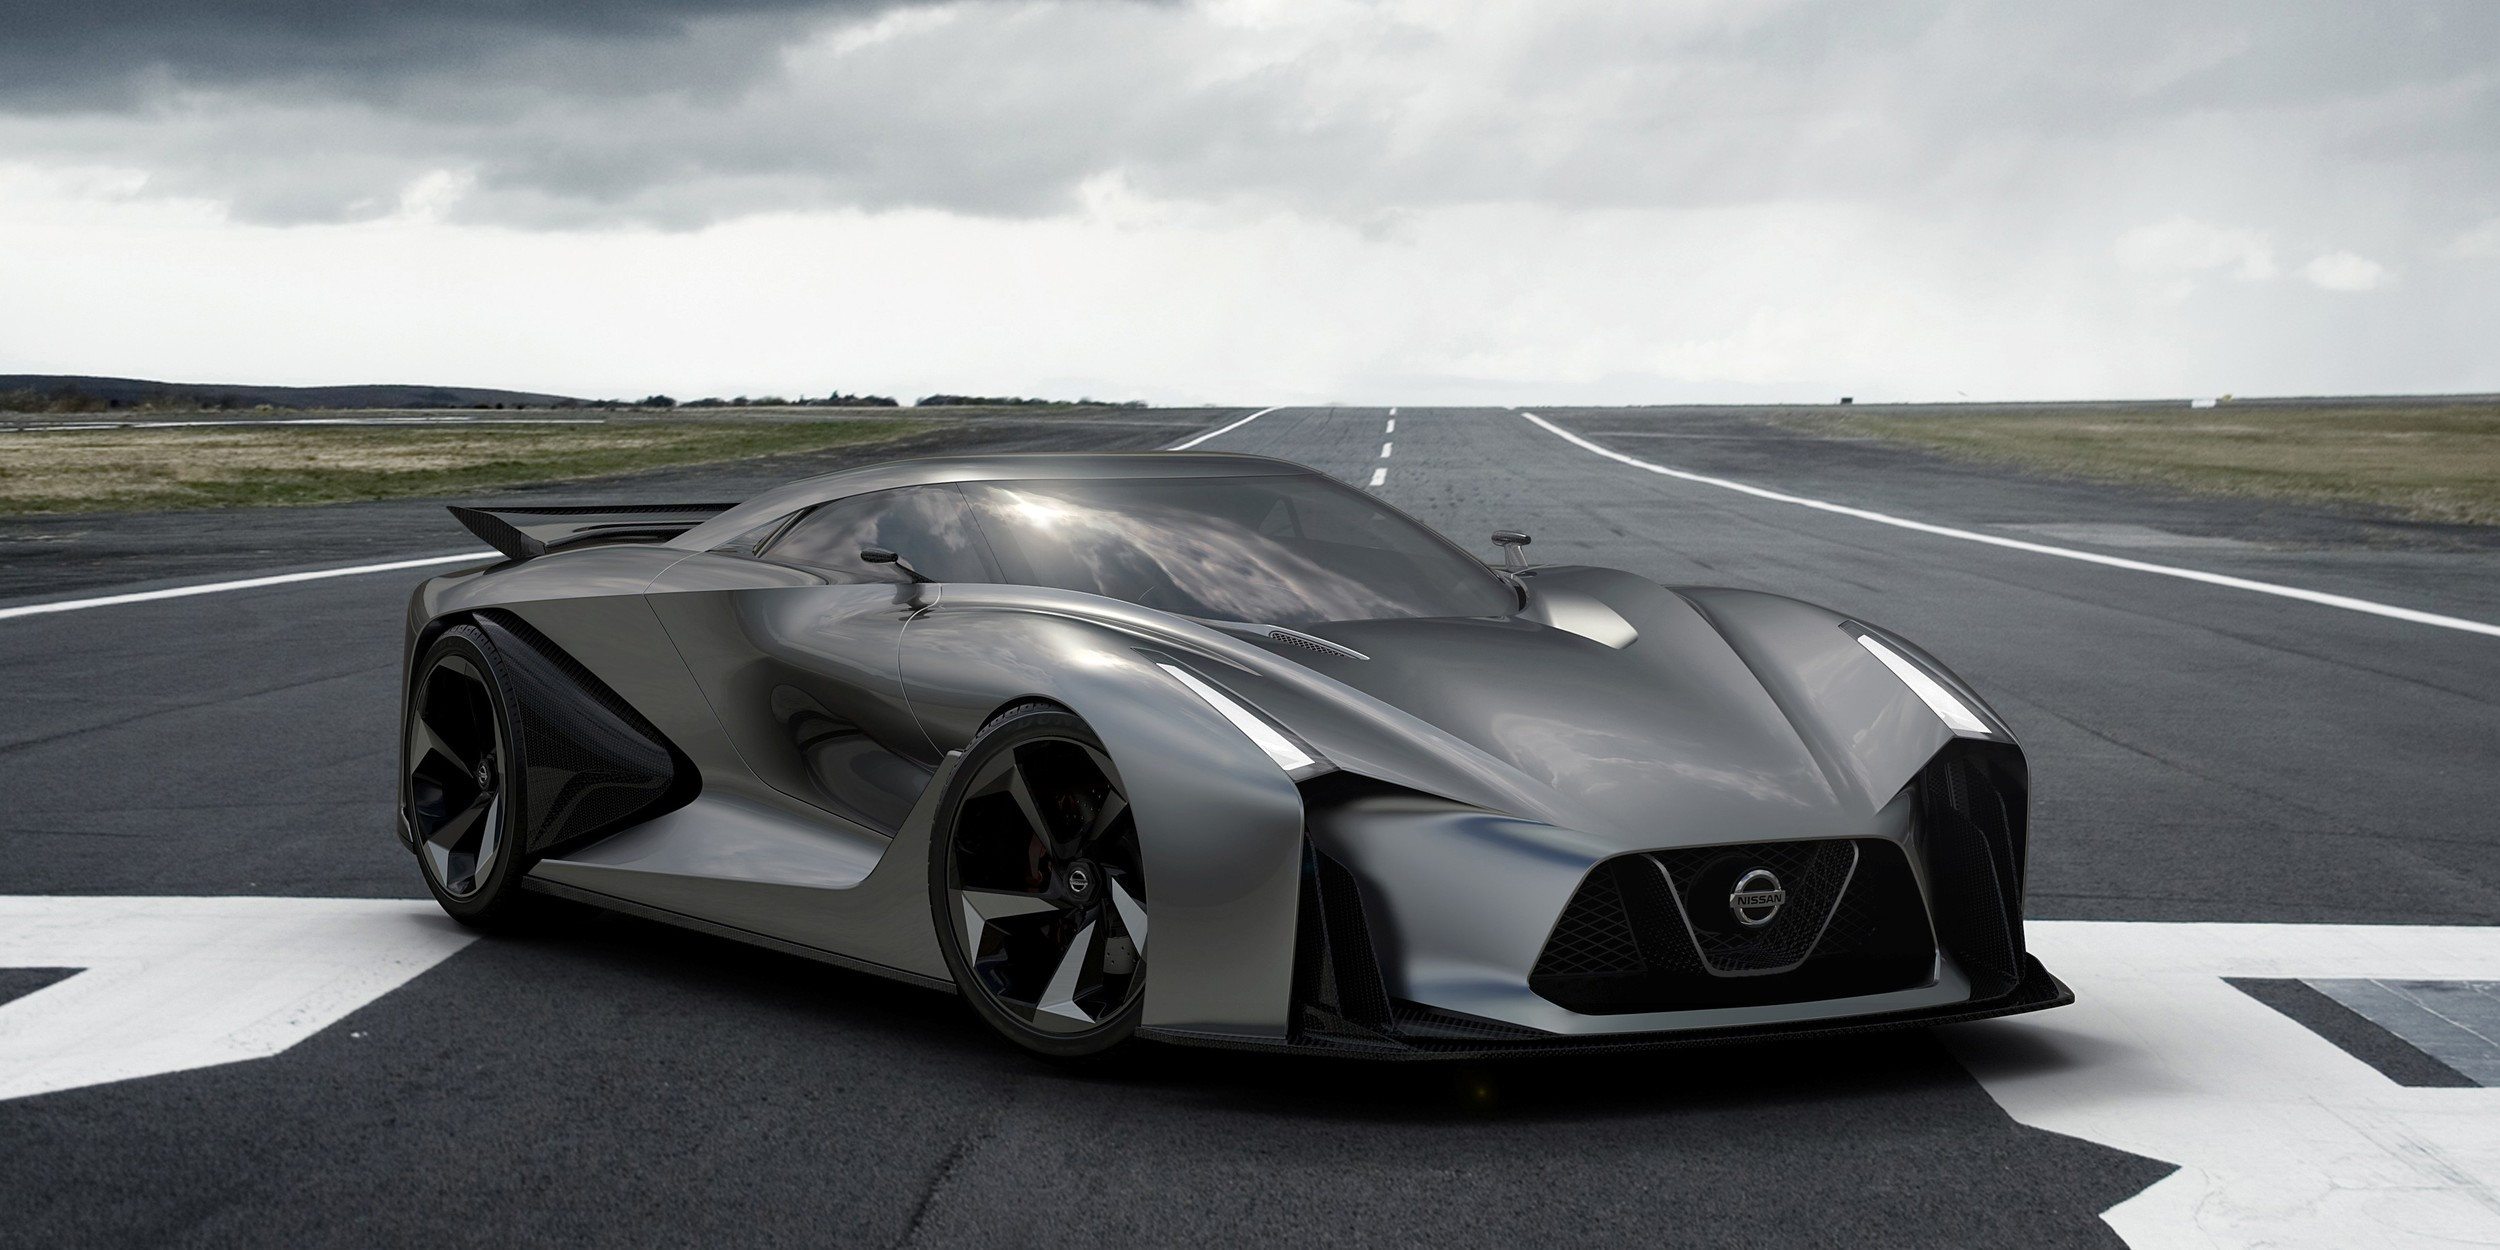 2014_Nissan_Concept_2020_Vision_Gran_Turismo_004_9032.jpg